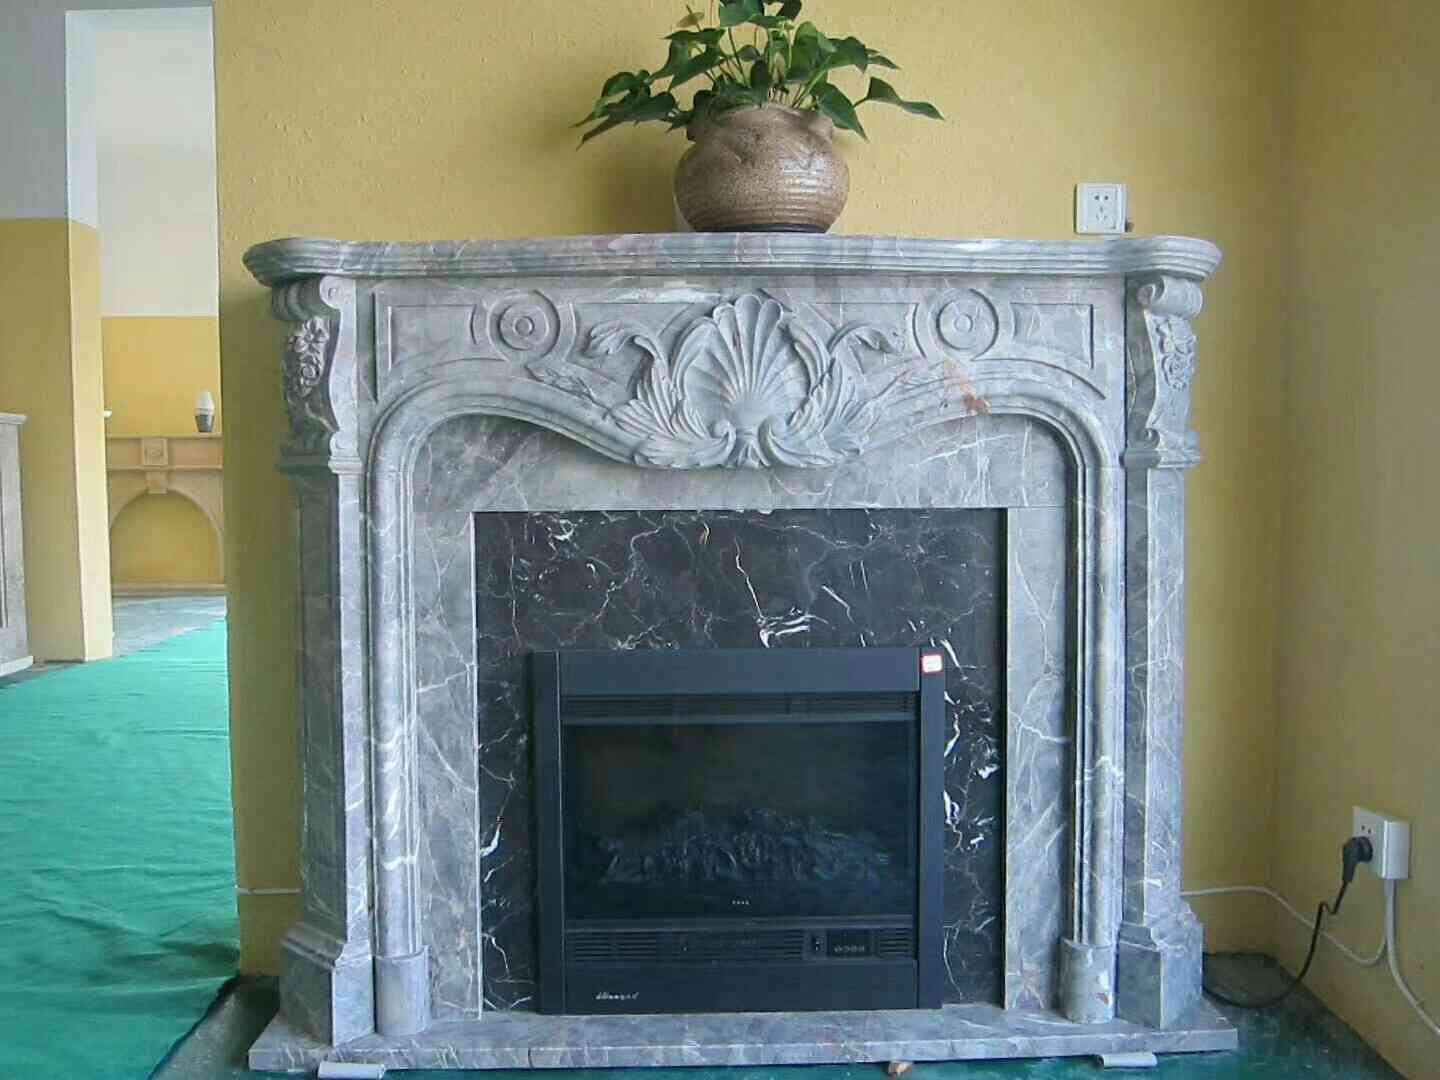 gas fireplace inserts prices,building a fireplace,soapstone fireplace,gas fireplace repair,majestic fireplace,gas fireplace service,mendota fireplace,fireplace fire